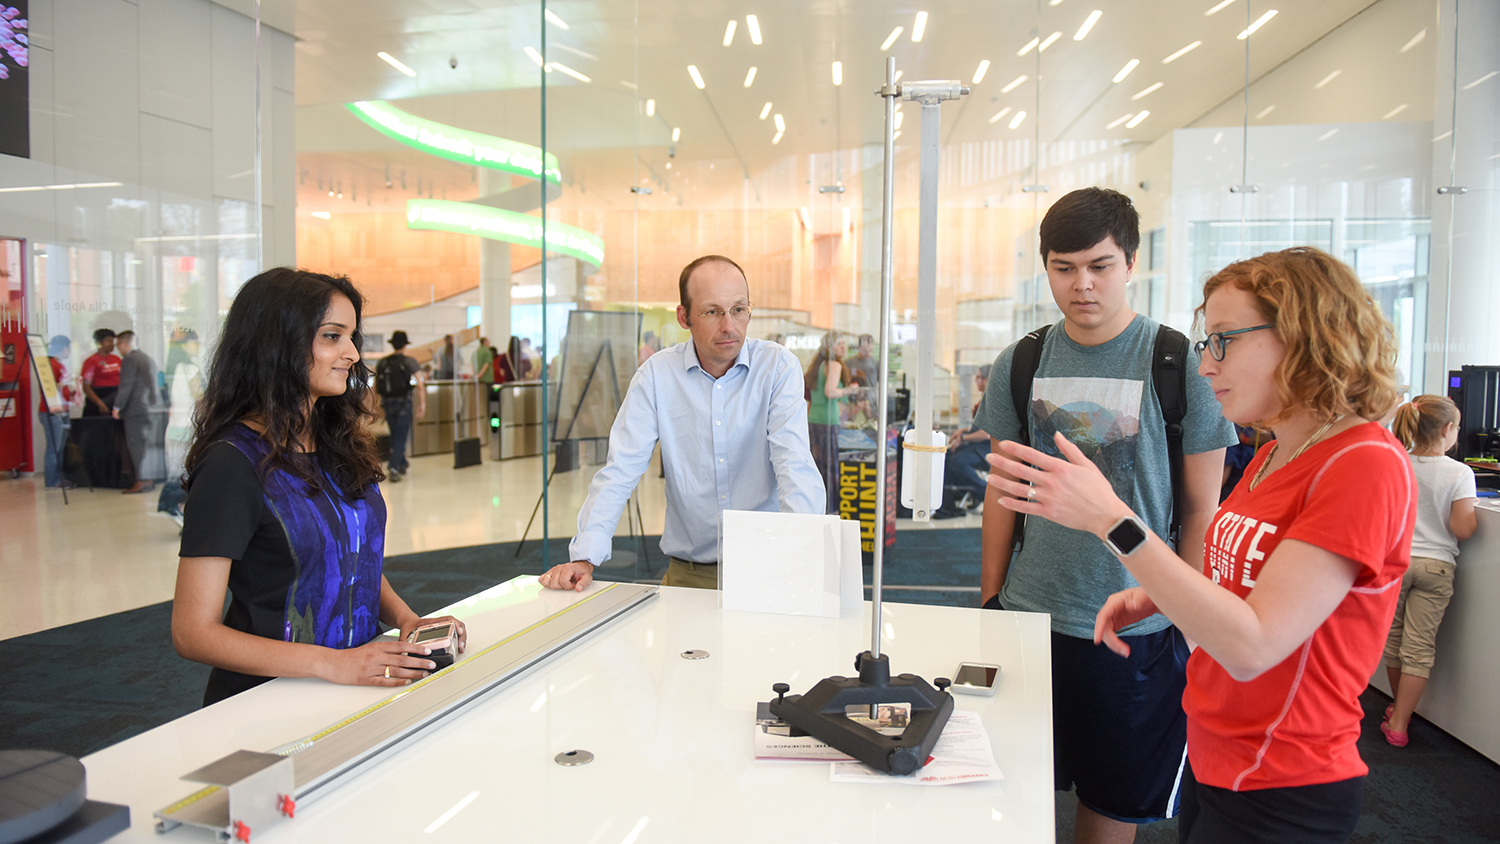 Students look at innovations on display in the lobby of NC State's Hunt Library.